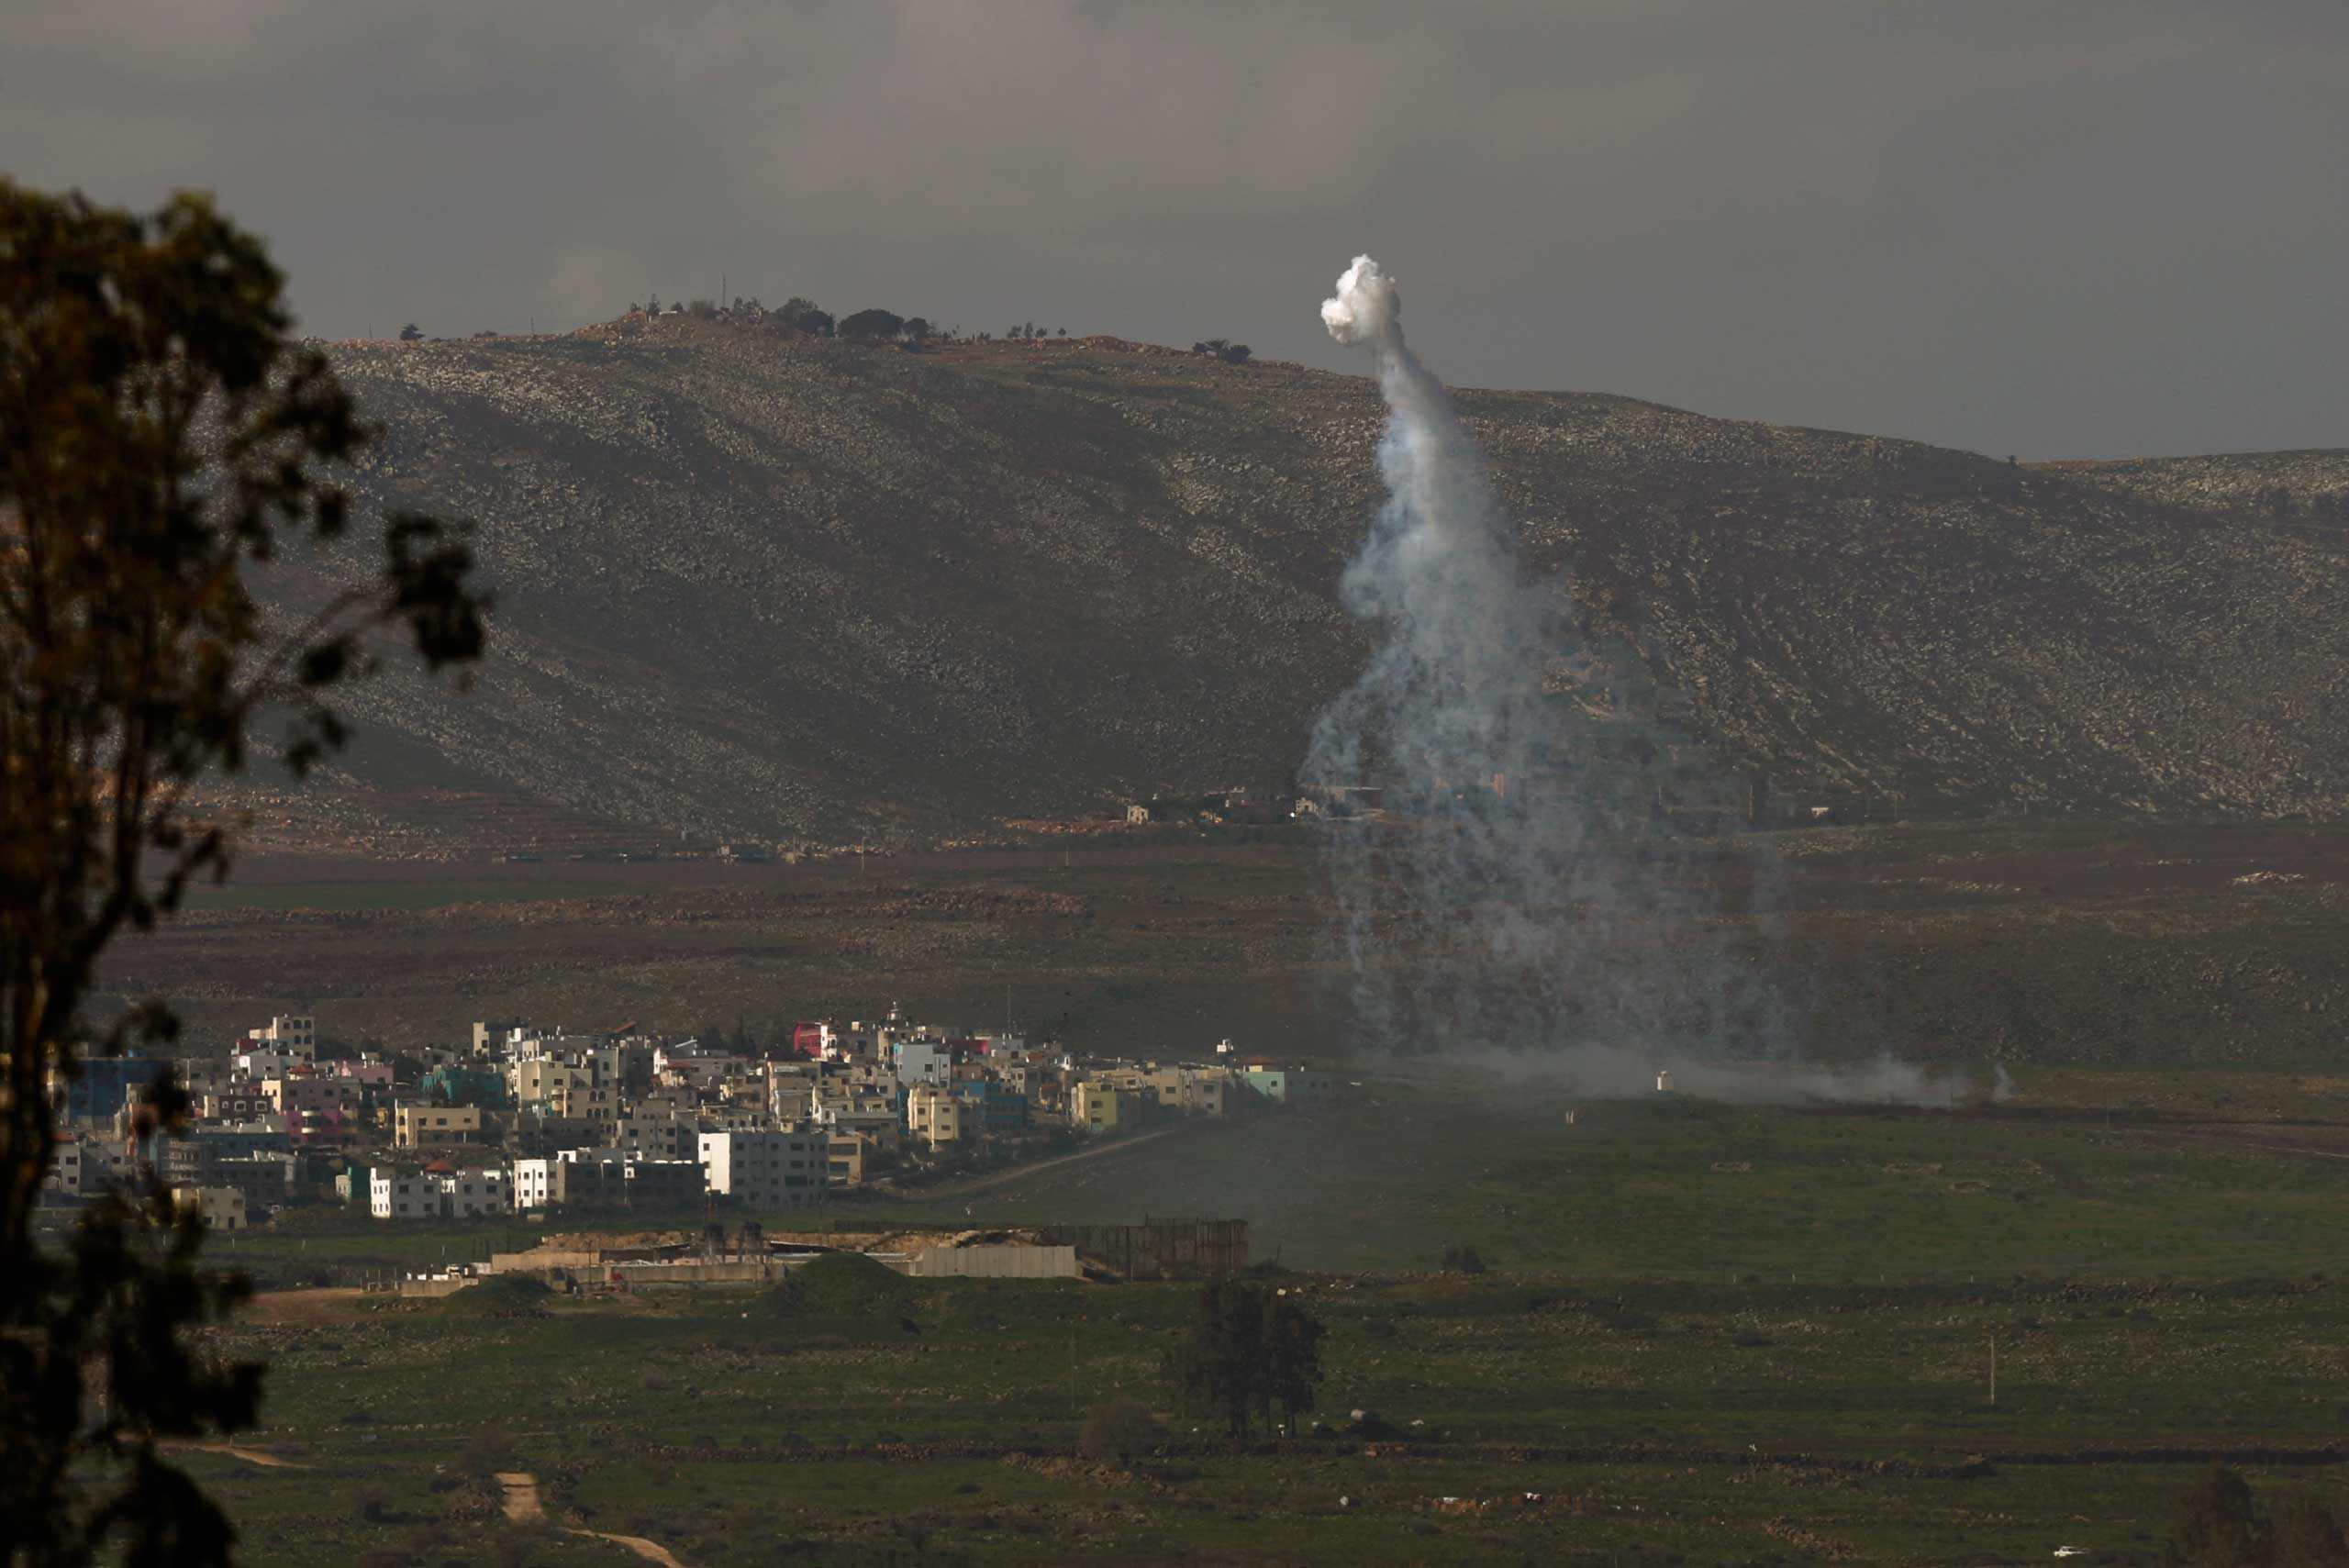 Smoke rises next to the village of Ghajar on the Israeli-Lebanese border, as a result of the fire exchange between the Israeli and Hizballah militant group on Jan. 28, 2015.